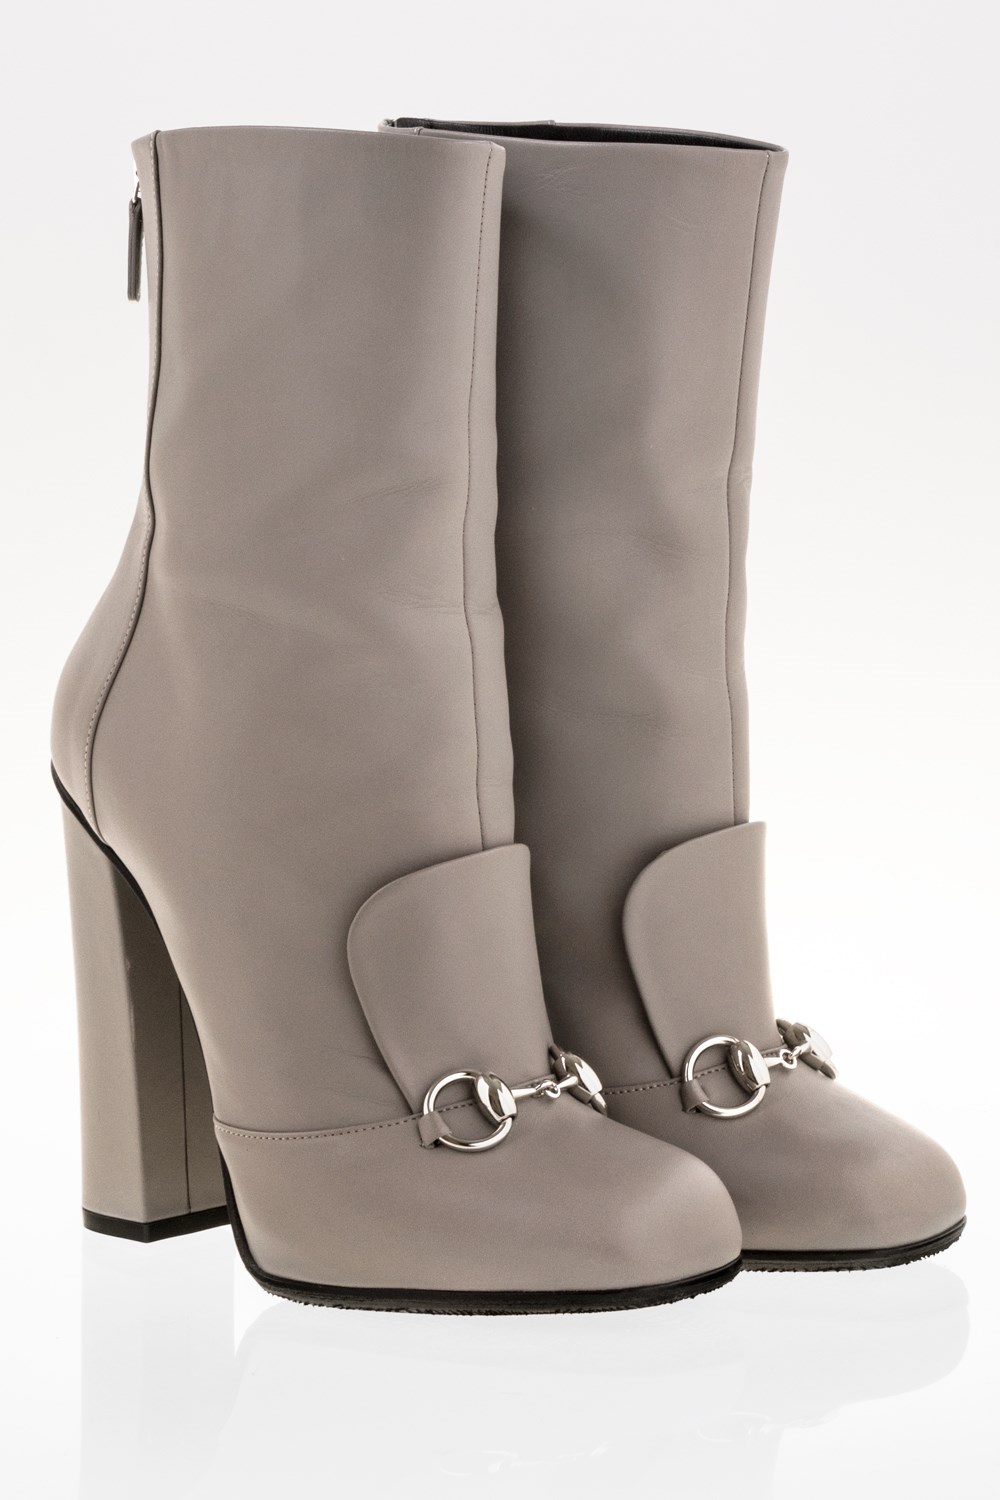 b0cdcbdfe62 ... Grey Lillian Horsebit Leather Ankle Boots   Size  39 - Fit  True to size.  Mouse ...